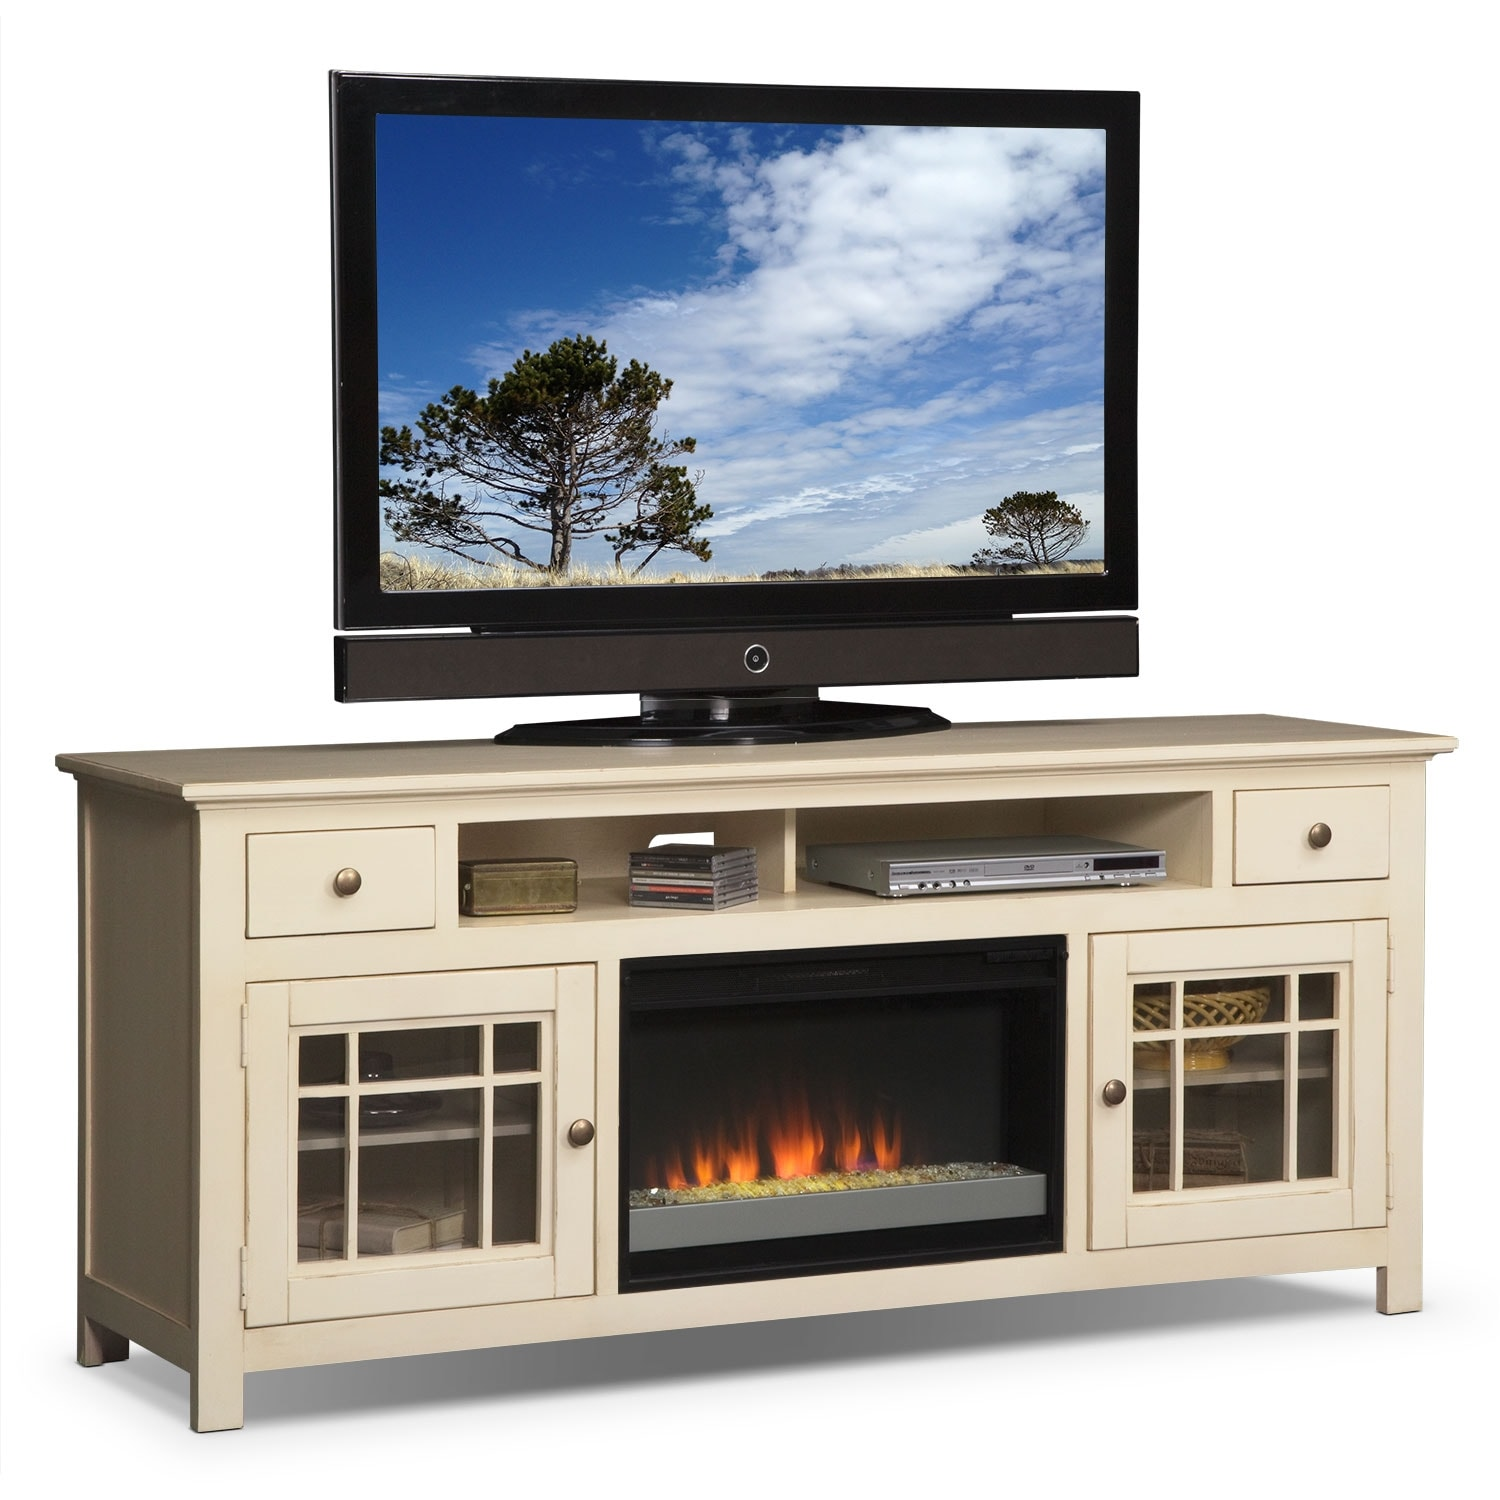 Merrick 74 Fireplace Tv Stand With Contemporary Insert White American Signature Furniture